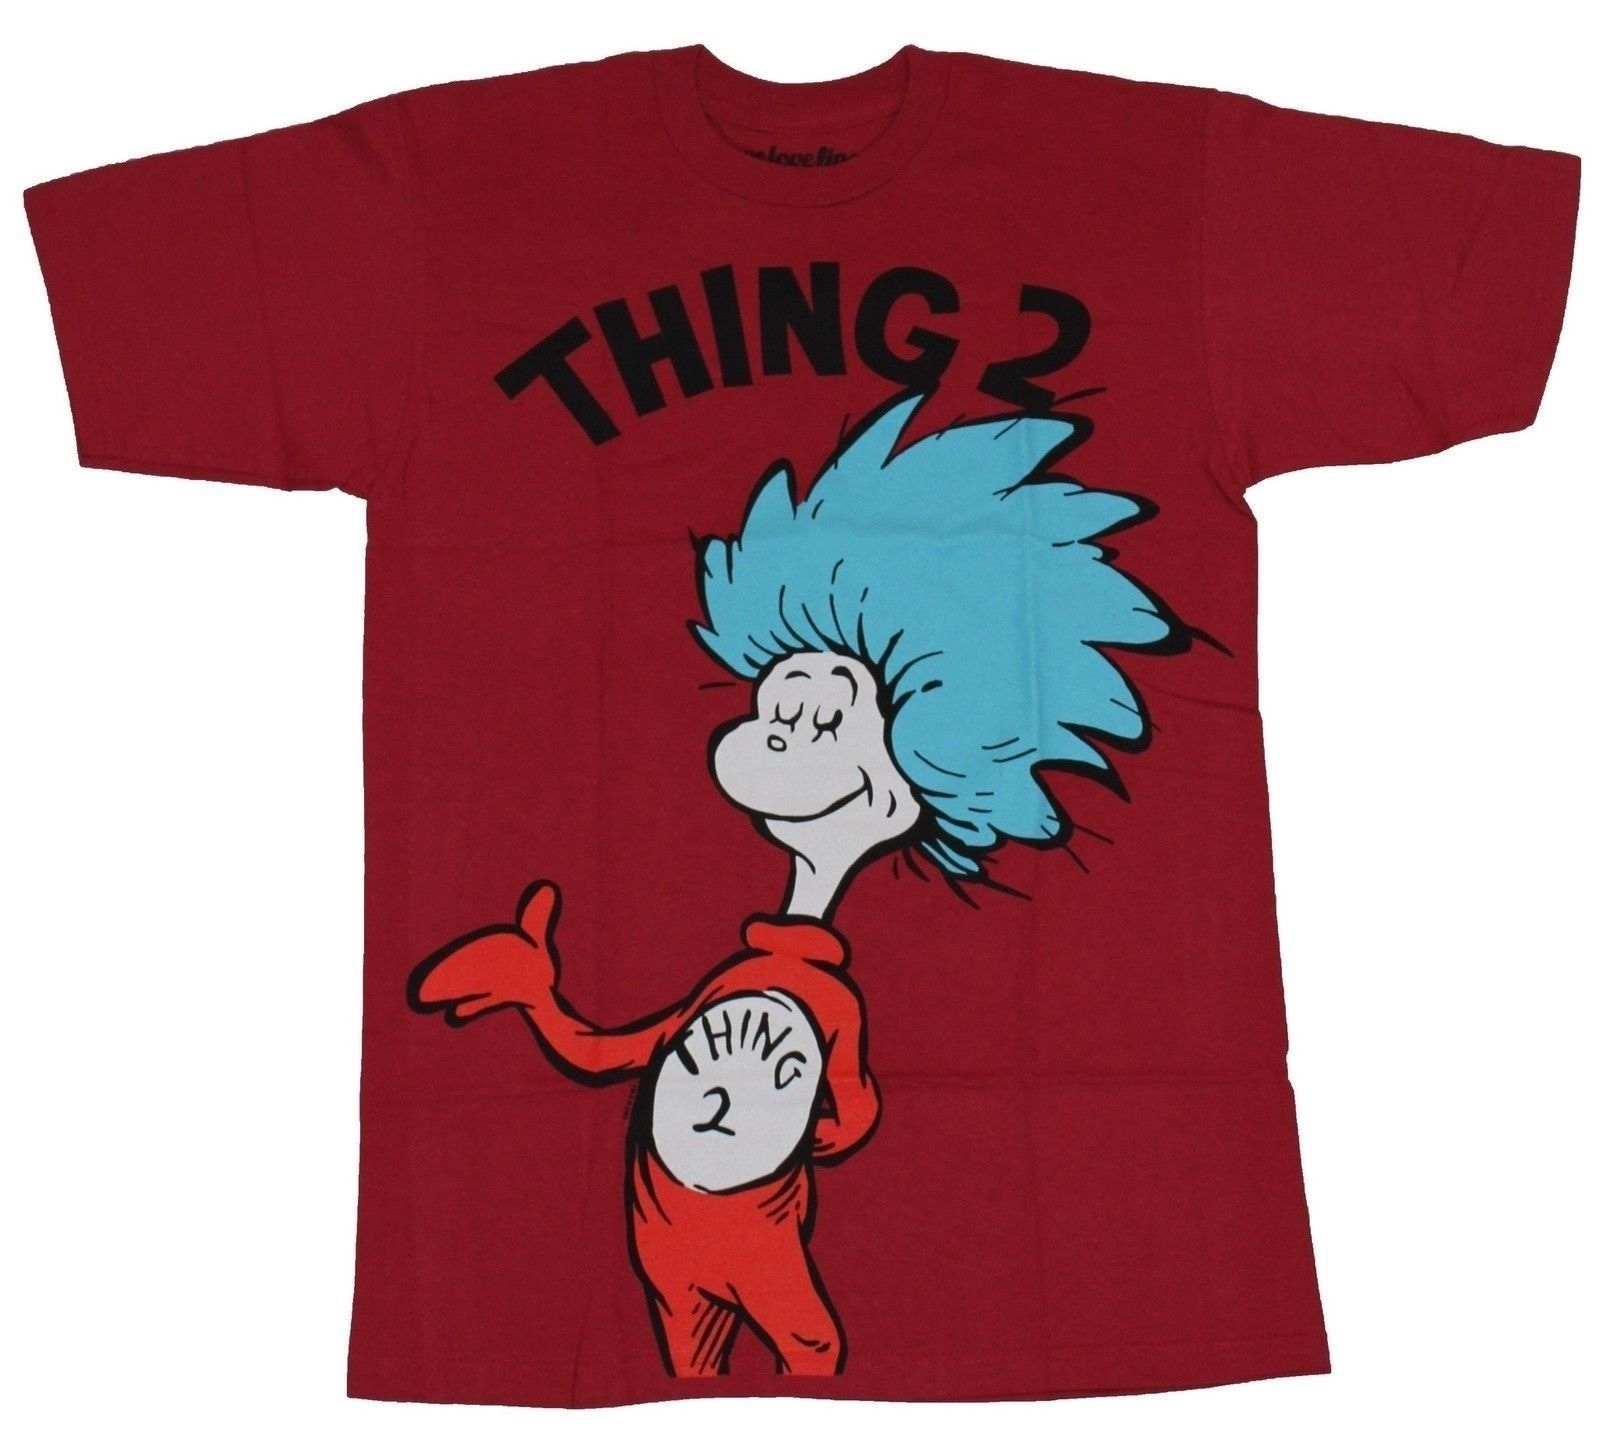 72e3cae9a Details about Dr. Seuss Cat in The Hat Mens T-Shirt - Thing 2 Full Drawing  Under Name